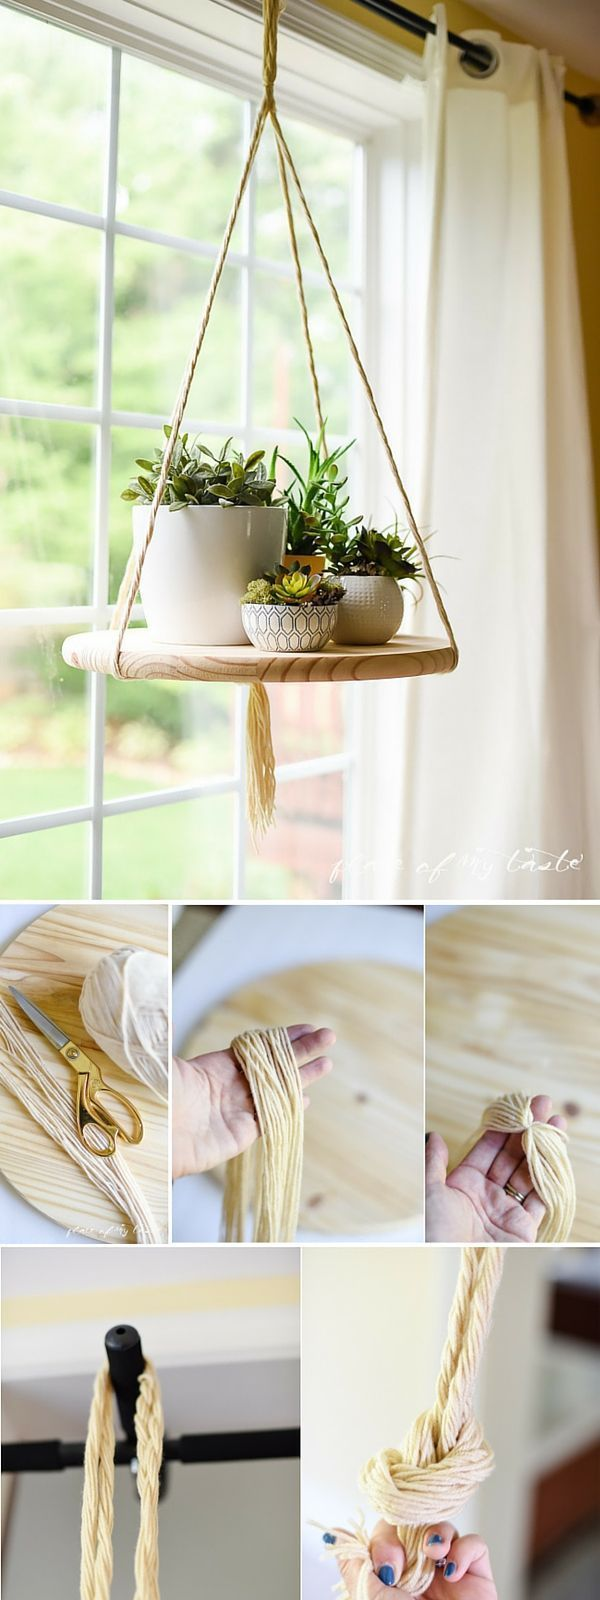 Check out the tutorial: #DIY Floating Shelf #crafts #homedecor (Cool Crafts Website)